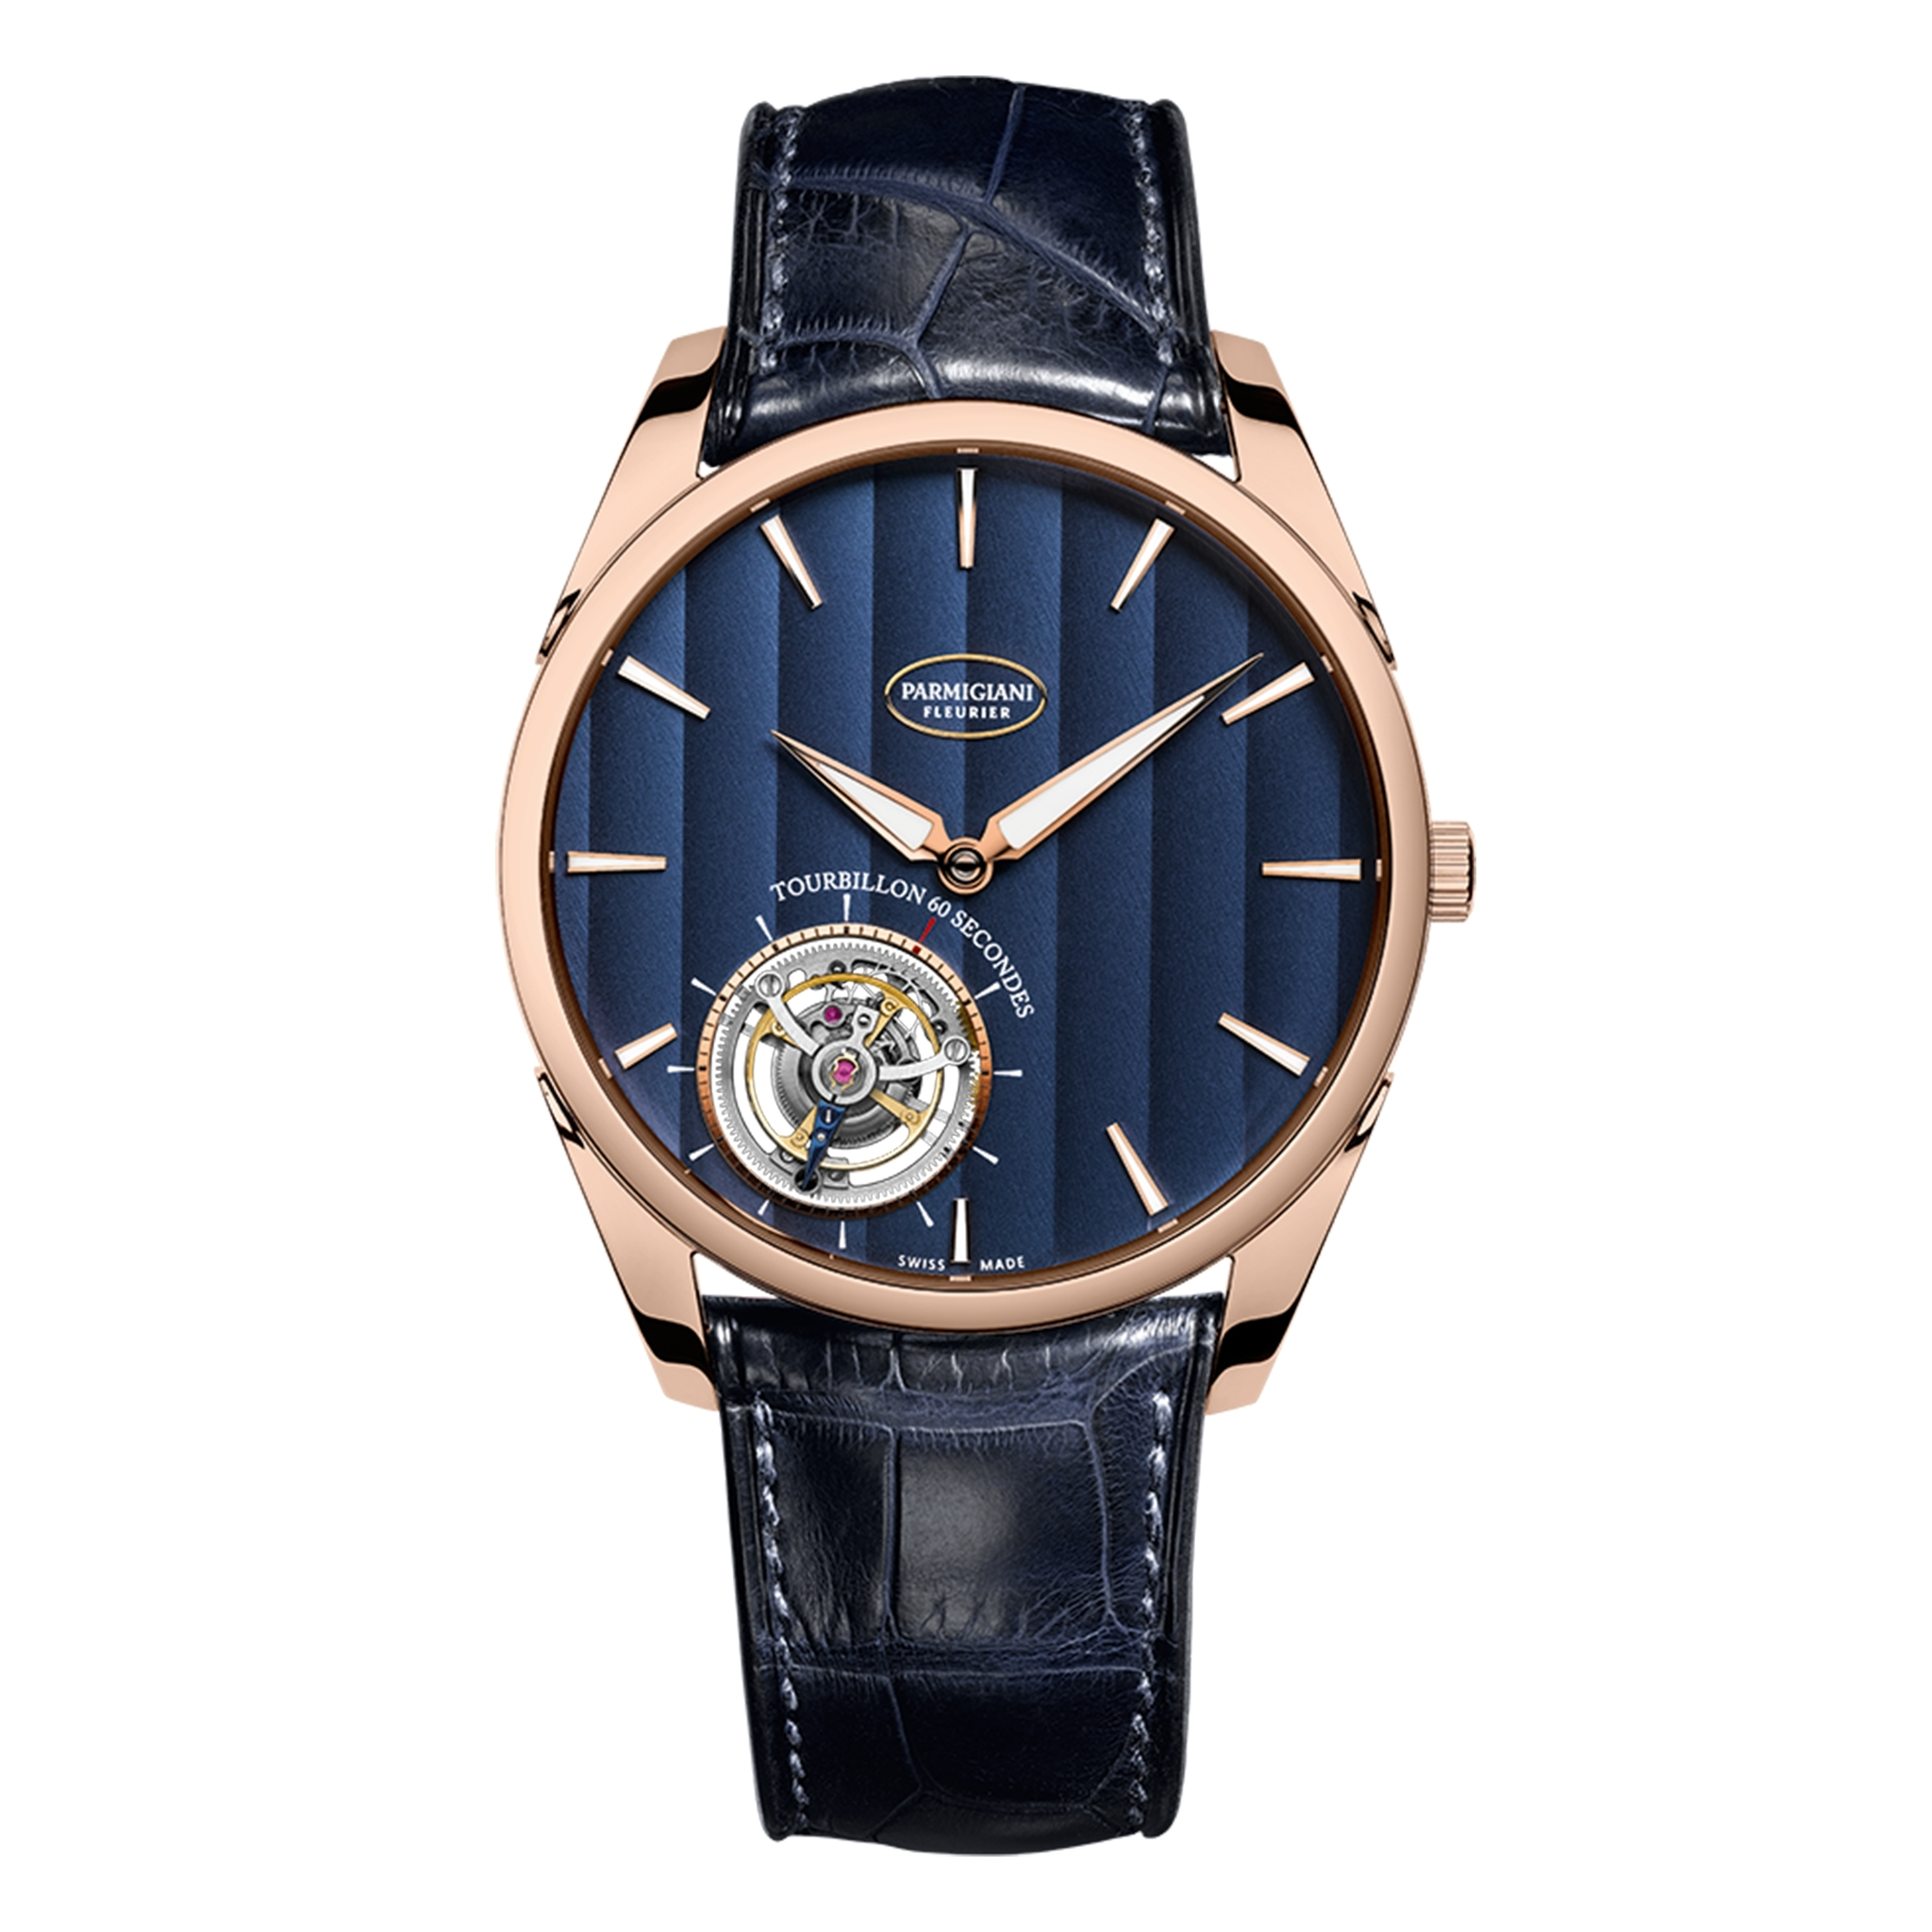 AUTOMATIC TOURBILLON